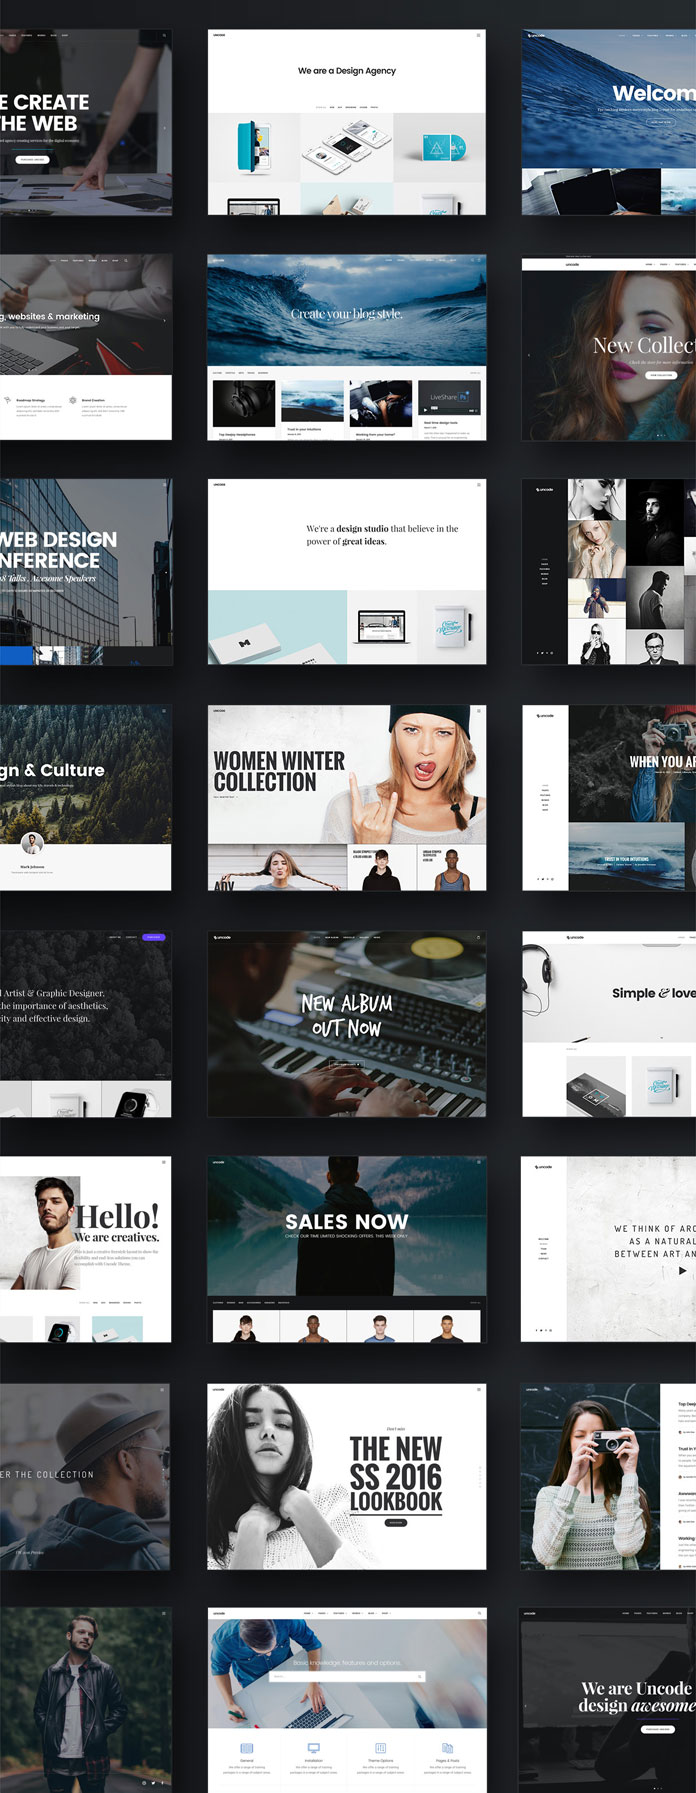 The Uncode WordPress theme comes with over 30 premade concepts for any need.